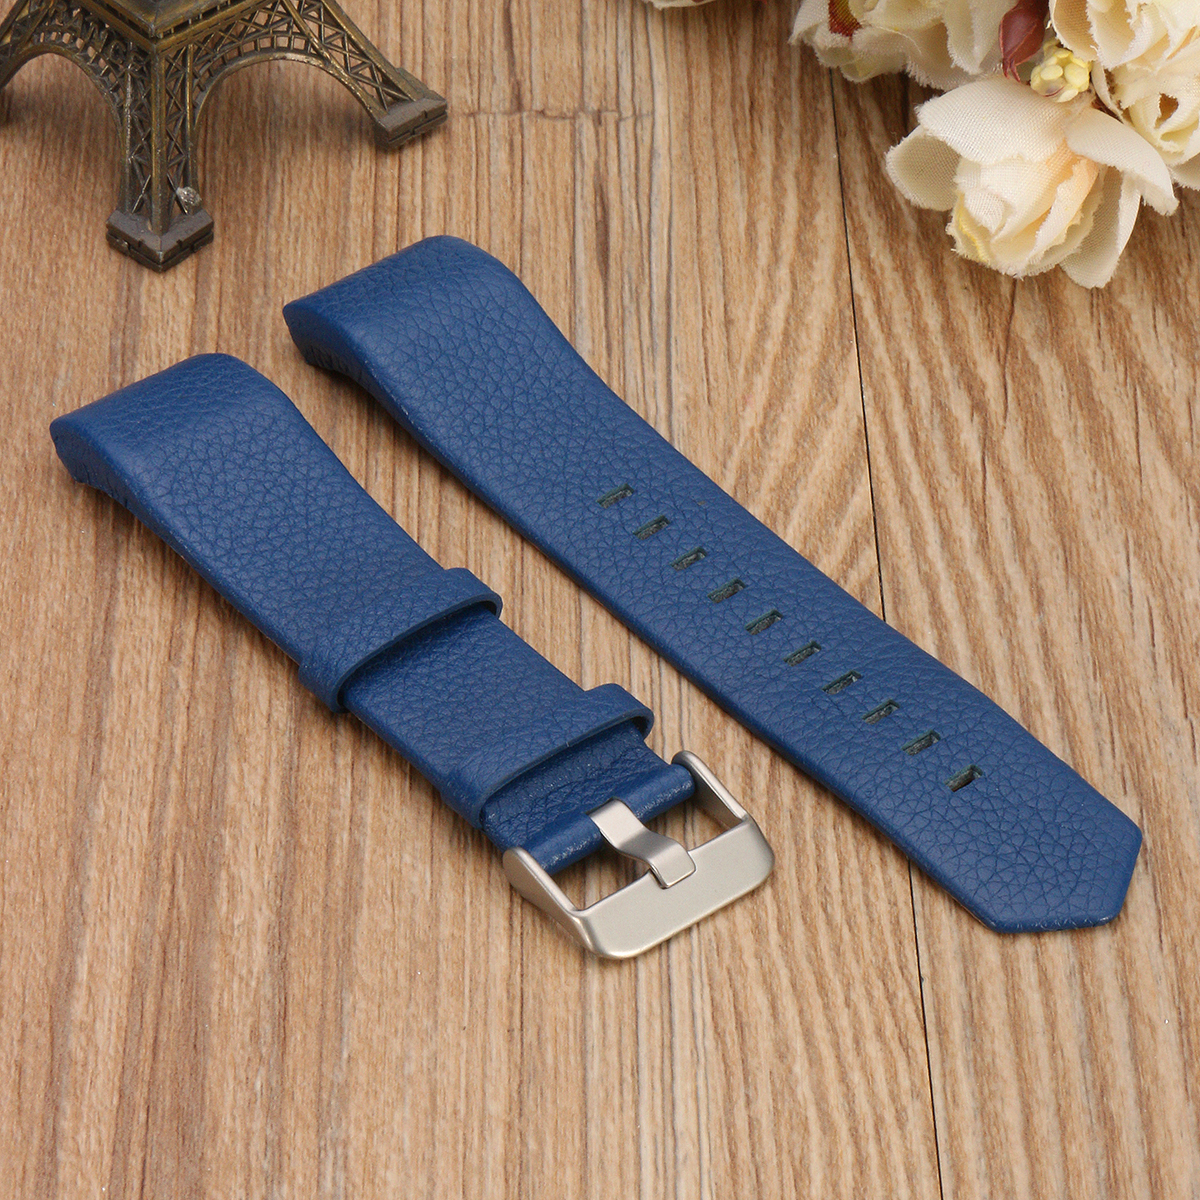 Replacement Sports Soft Durable Leather Bracelet Strap Band Watchband for Fitbit Charge 2